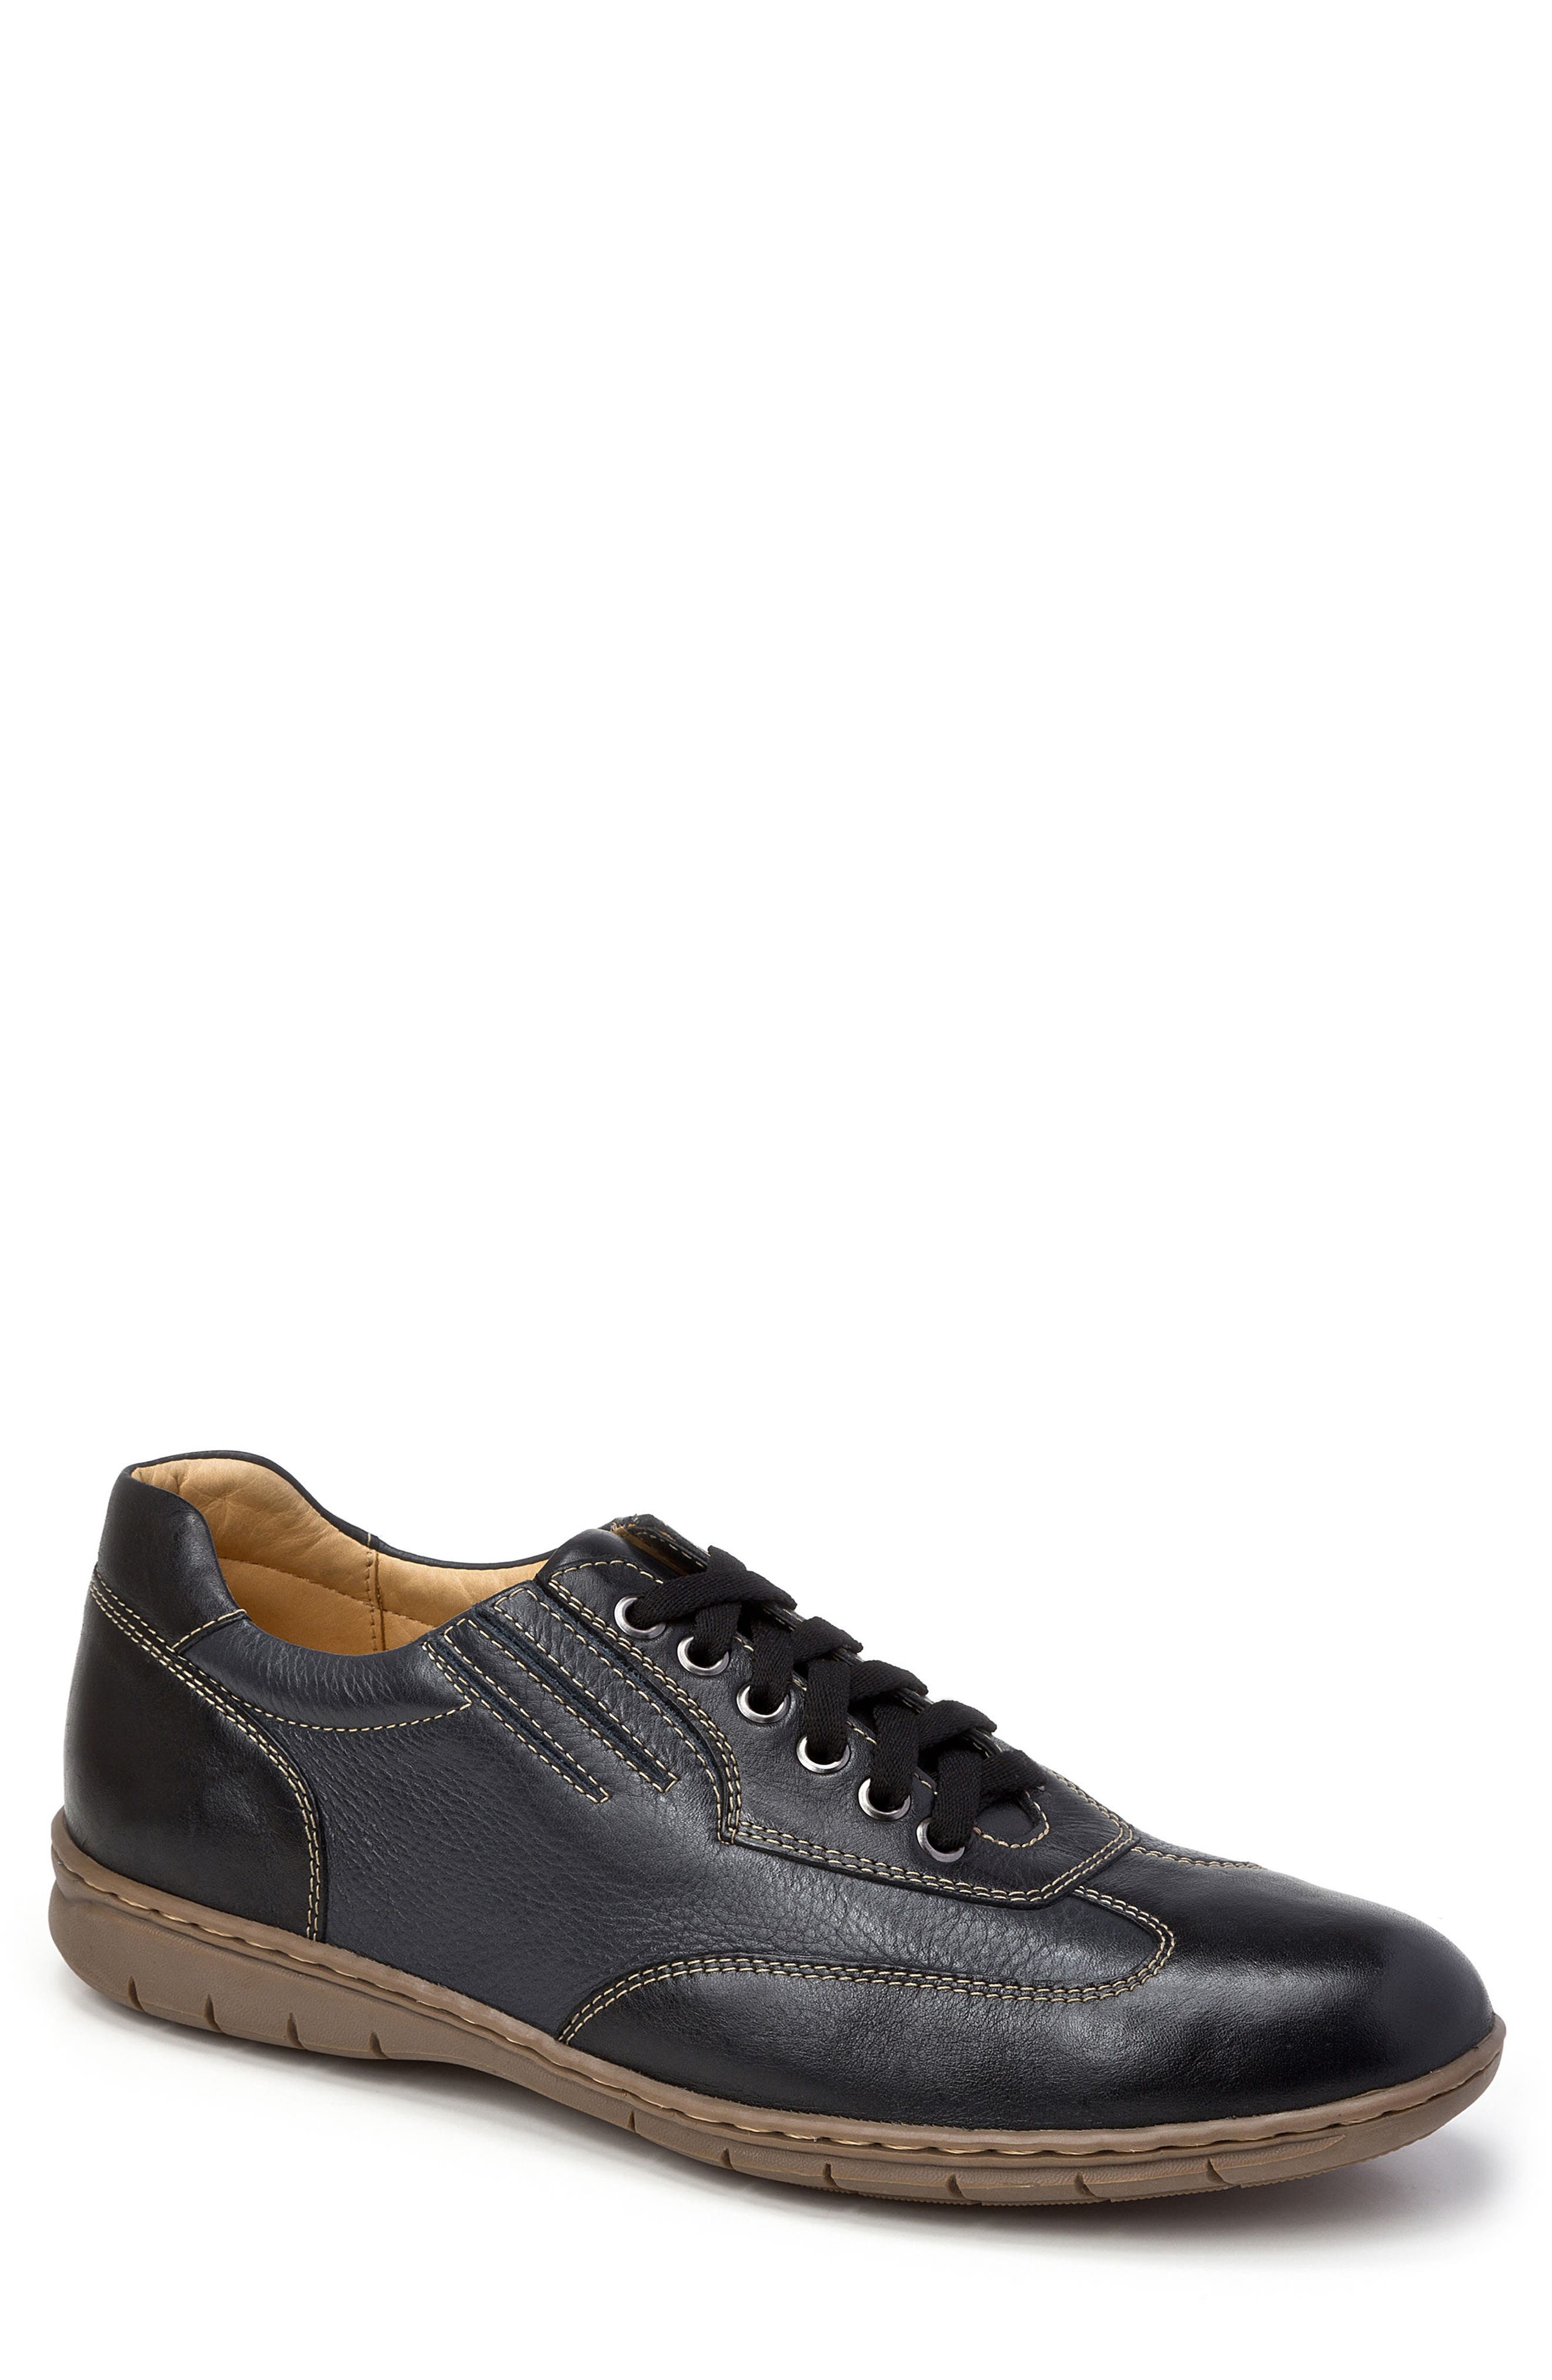 Vernon Sneaker,                             Main thumbnail 1, color,                             BLACK LEATHER